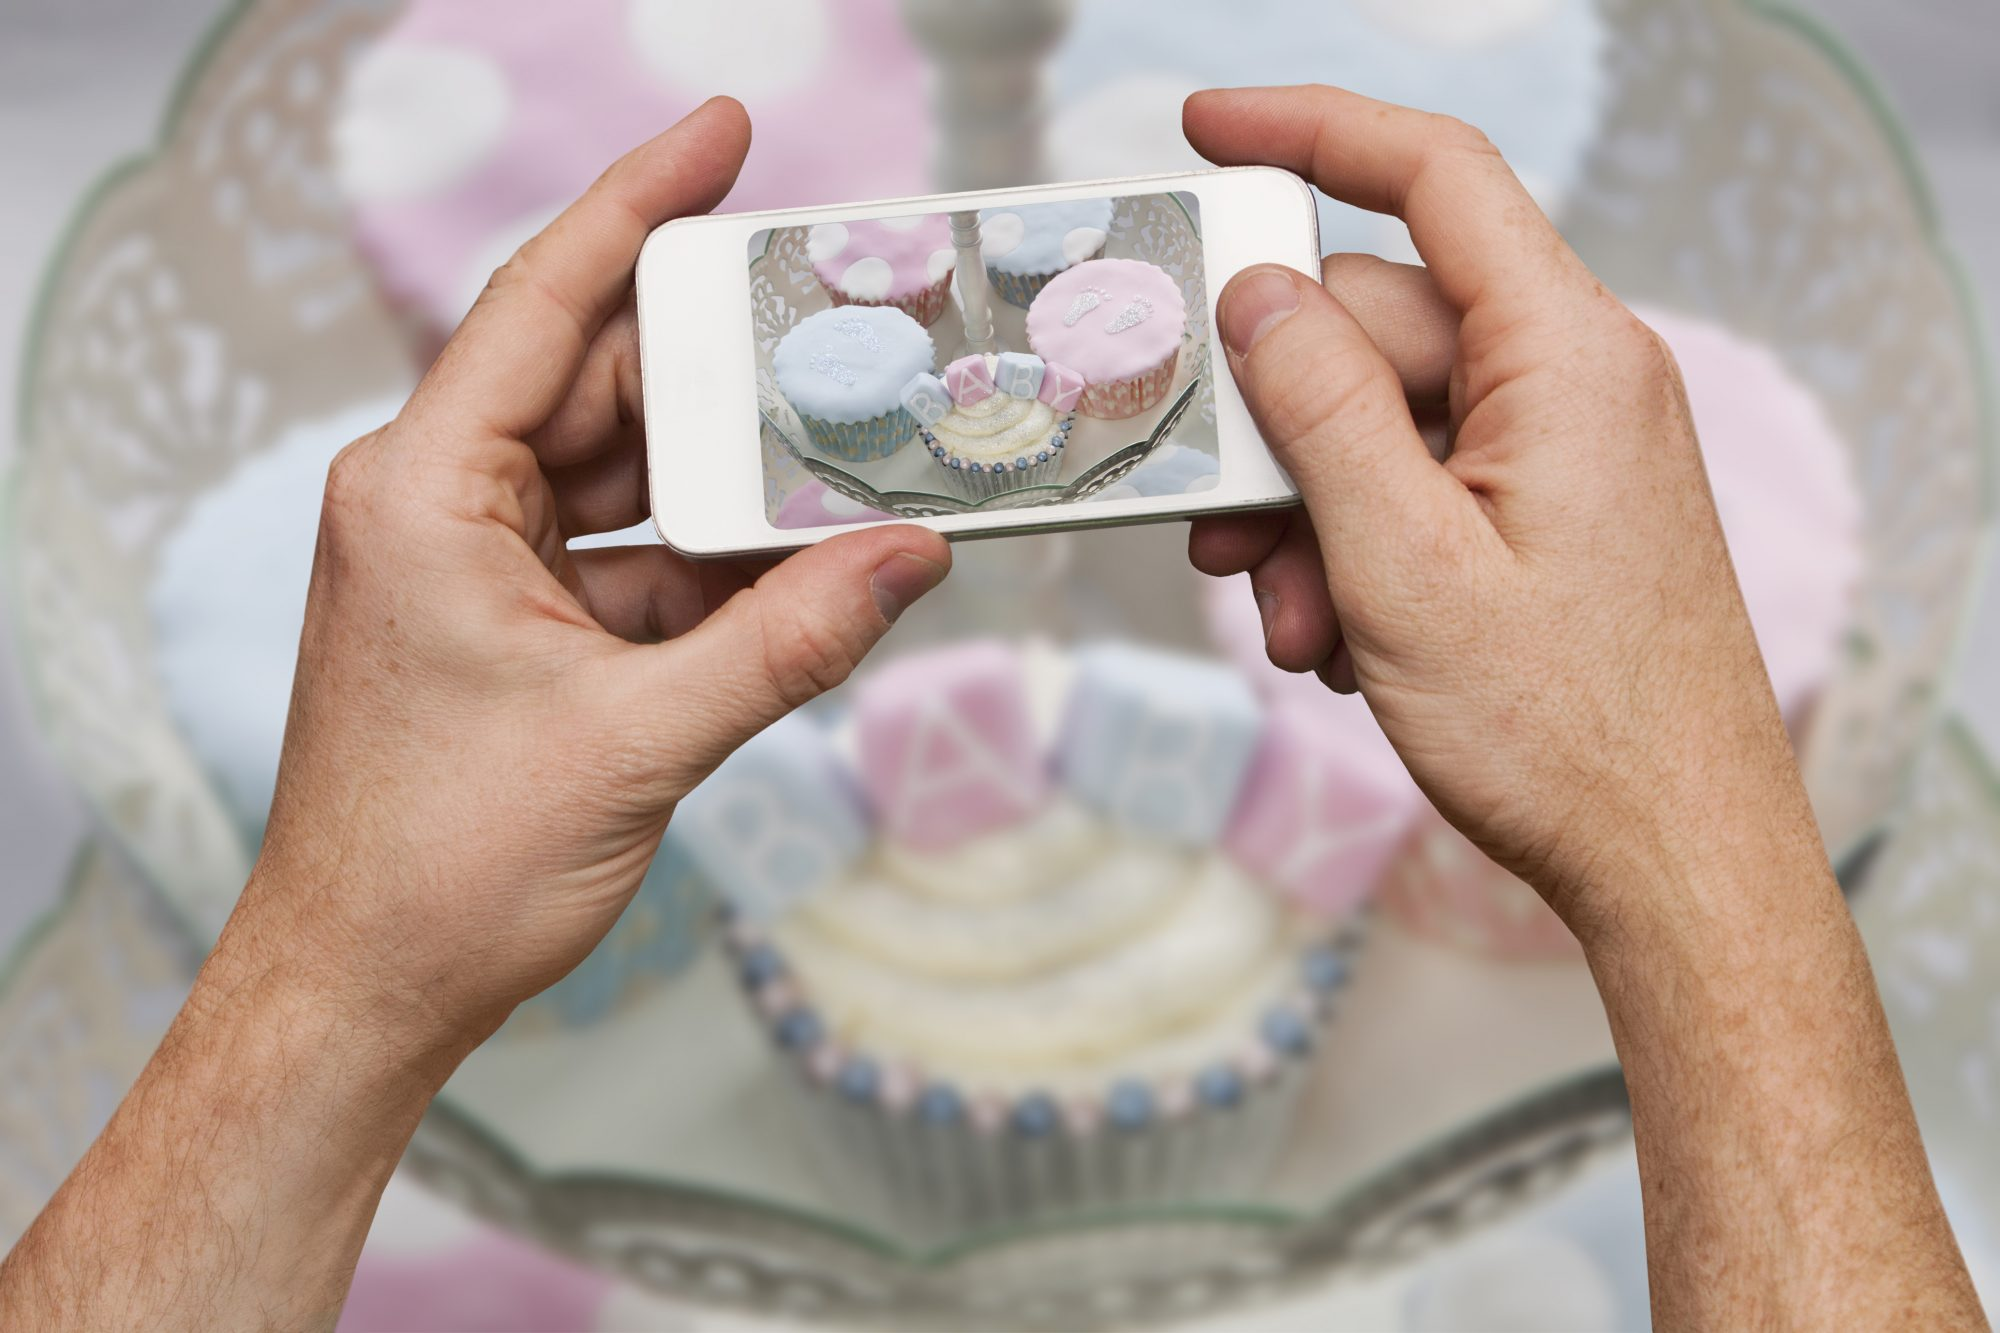 How to host a virtual baby shower - virtual baby shower ideas for quarantine (cupcakes)